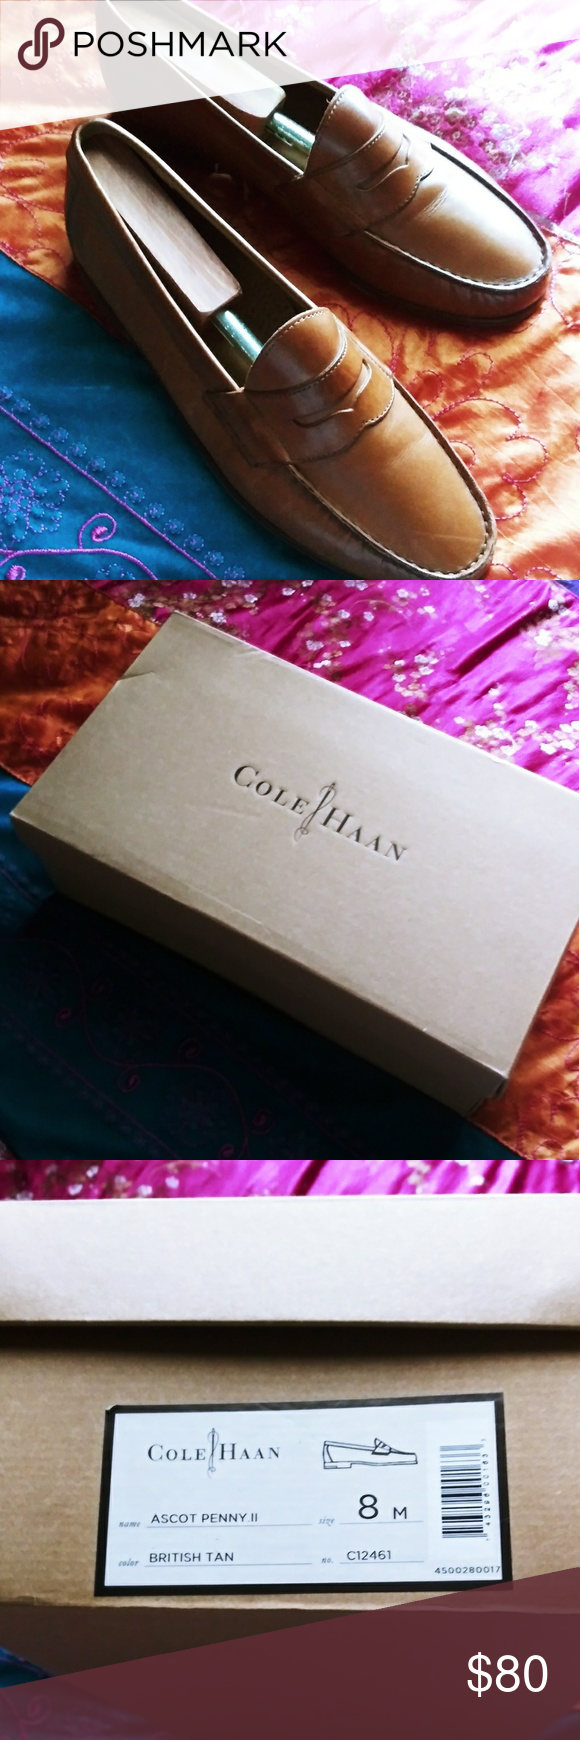 1f41e5fbca9 Cole Haan Ascot Penny II These have been worn a few times but are in  excellent